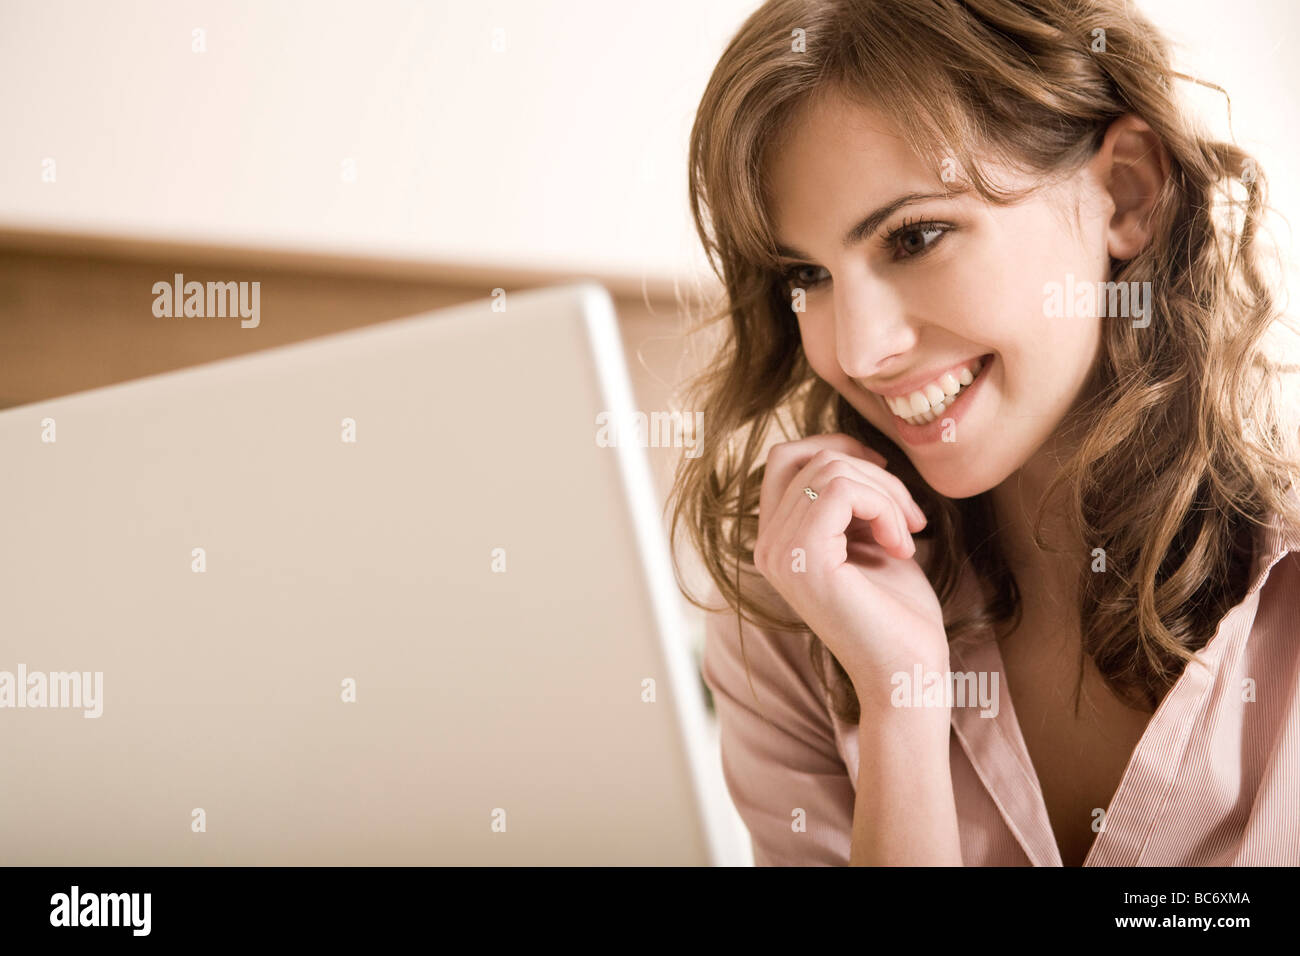 woman on phone with notebook Stock Photo